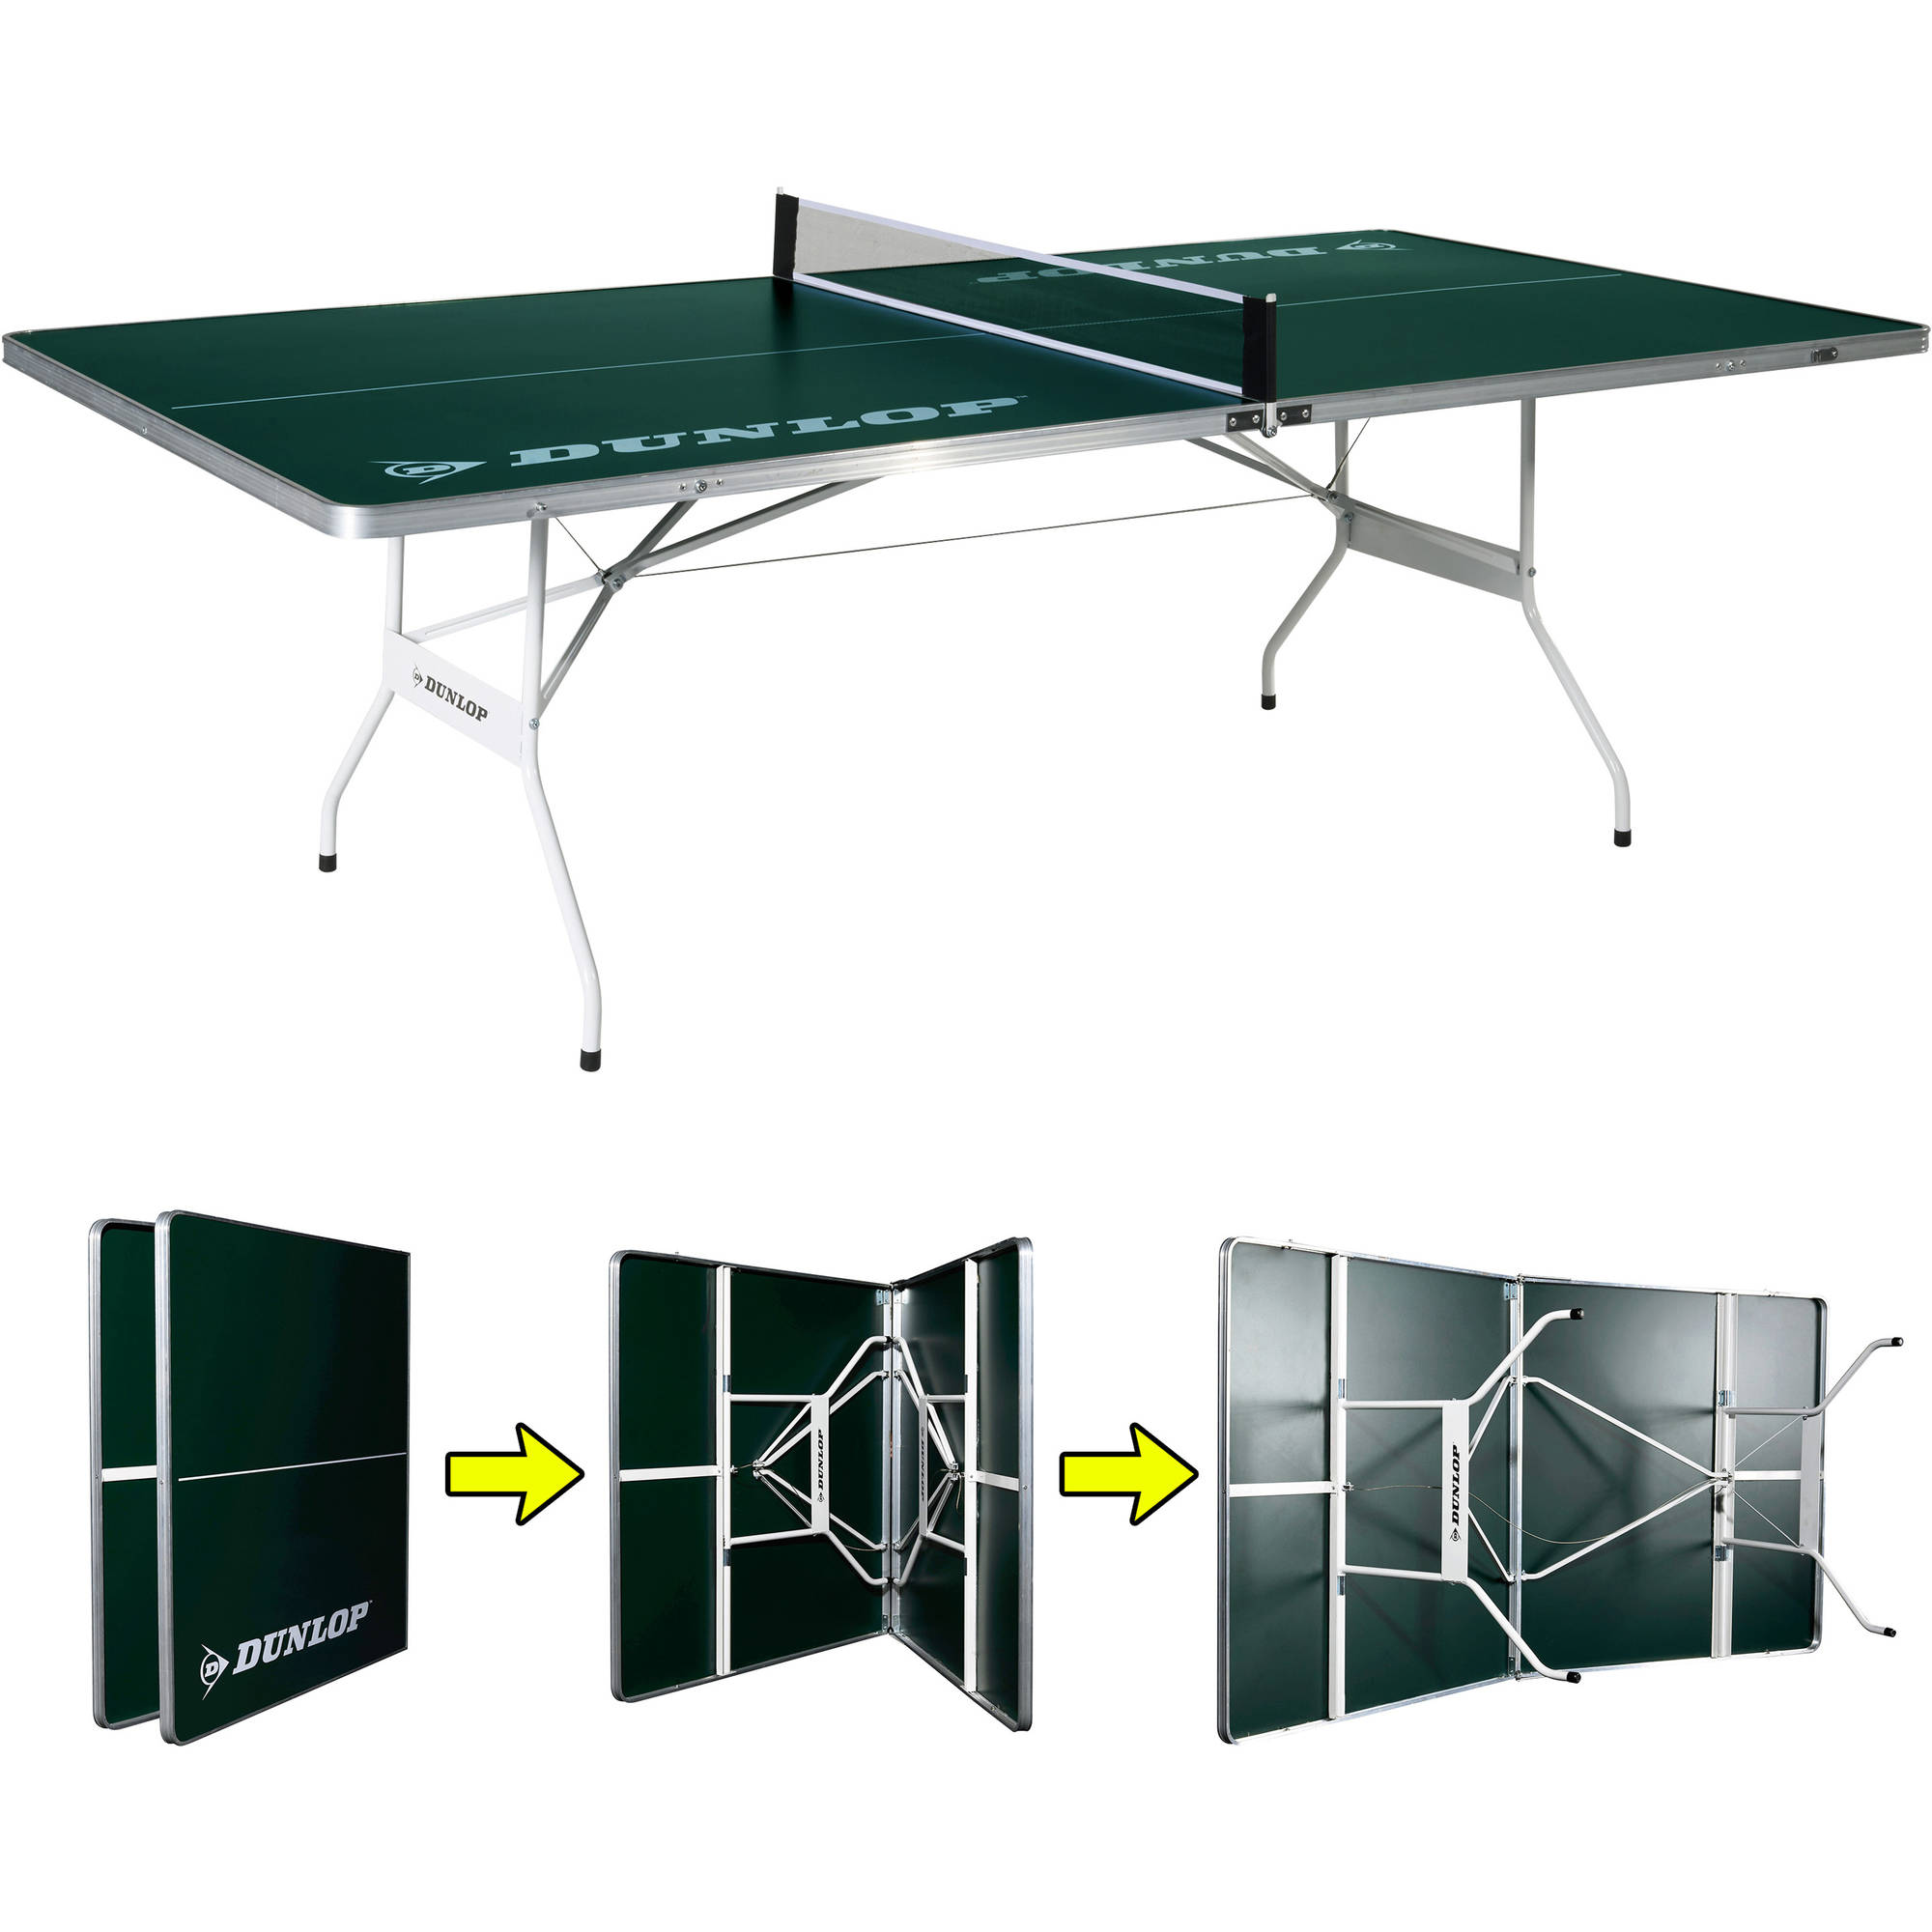 DUNLOP Easy Fold Outdoor Table Tennis Table   Walmart.com